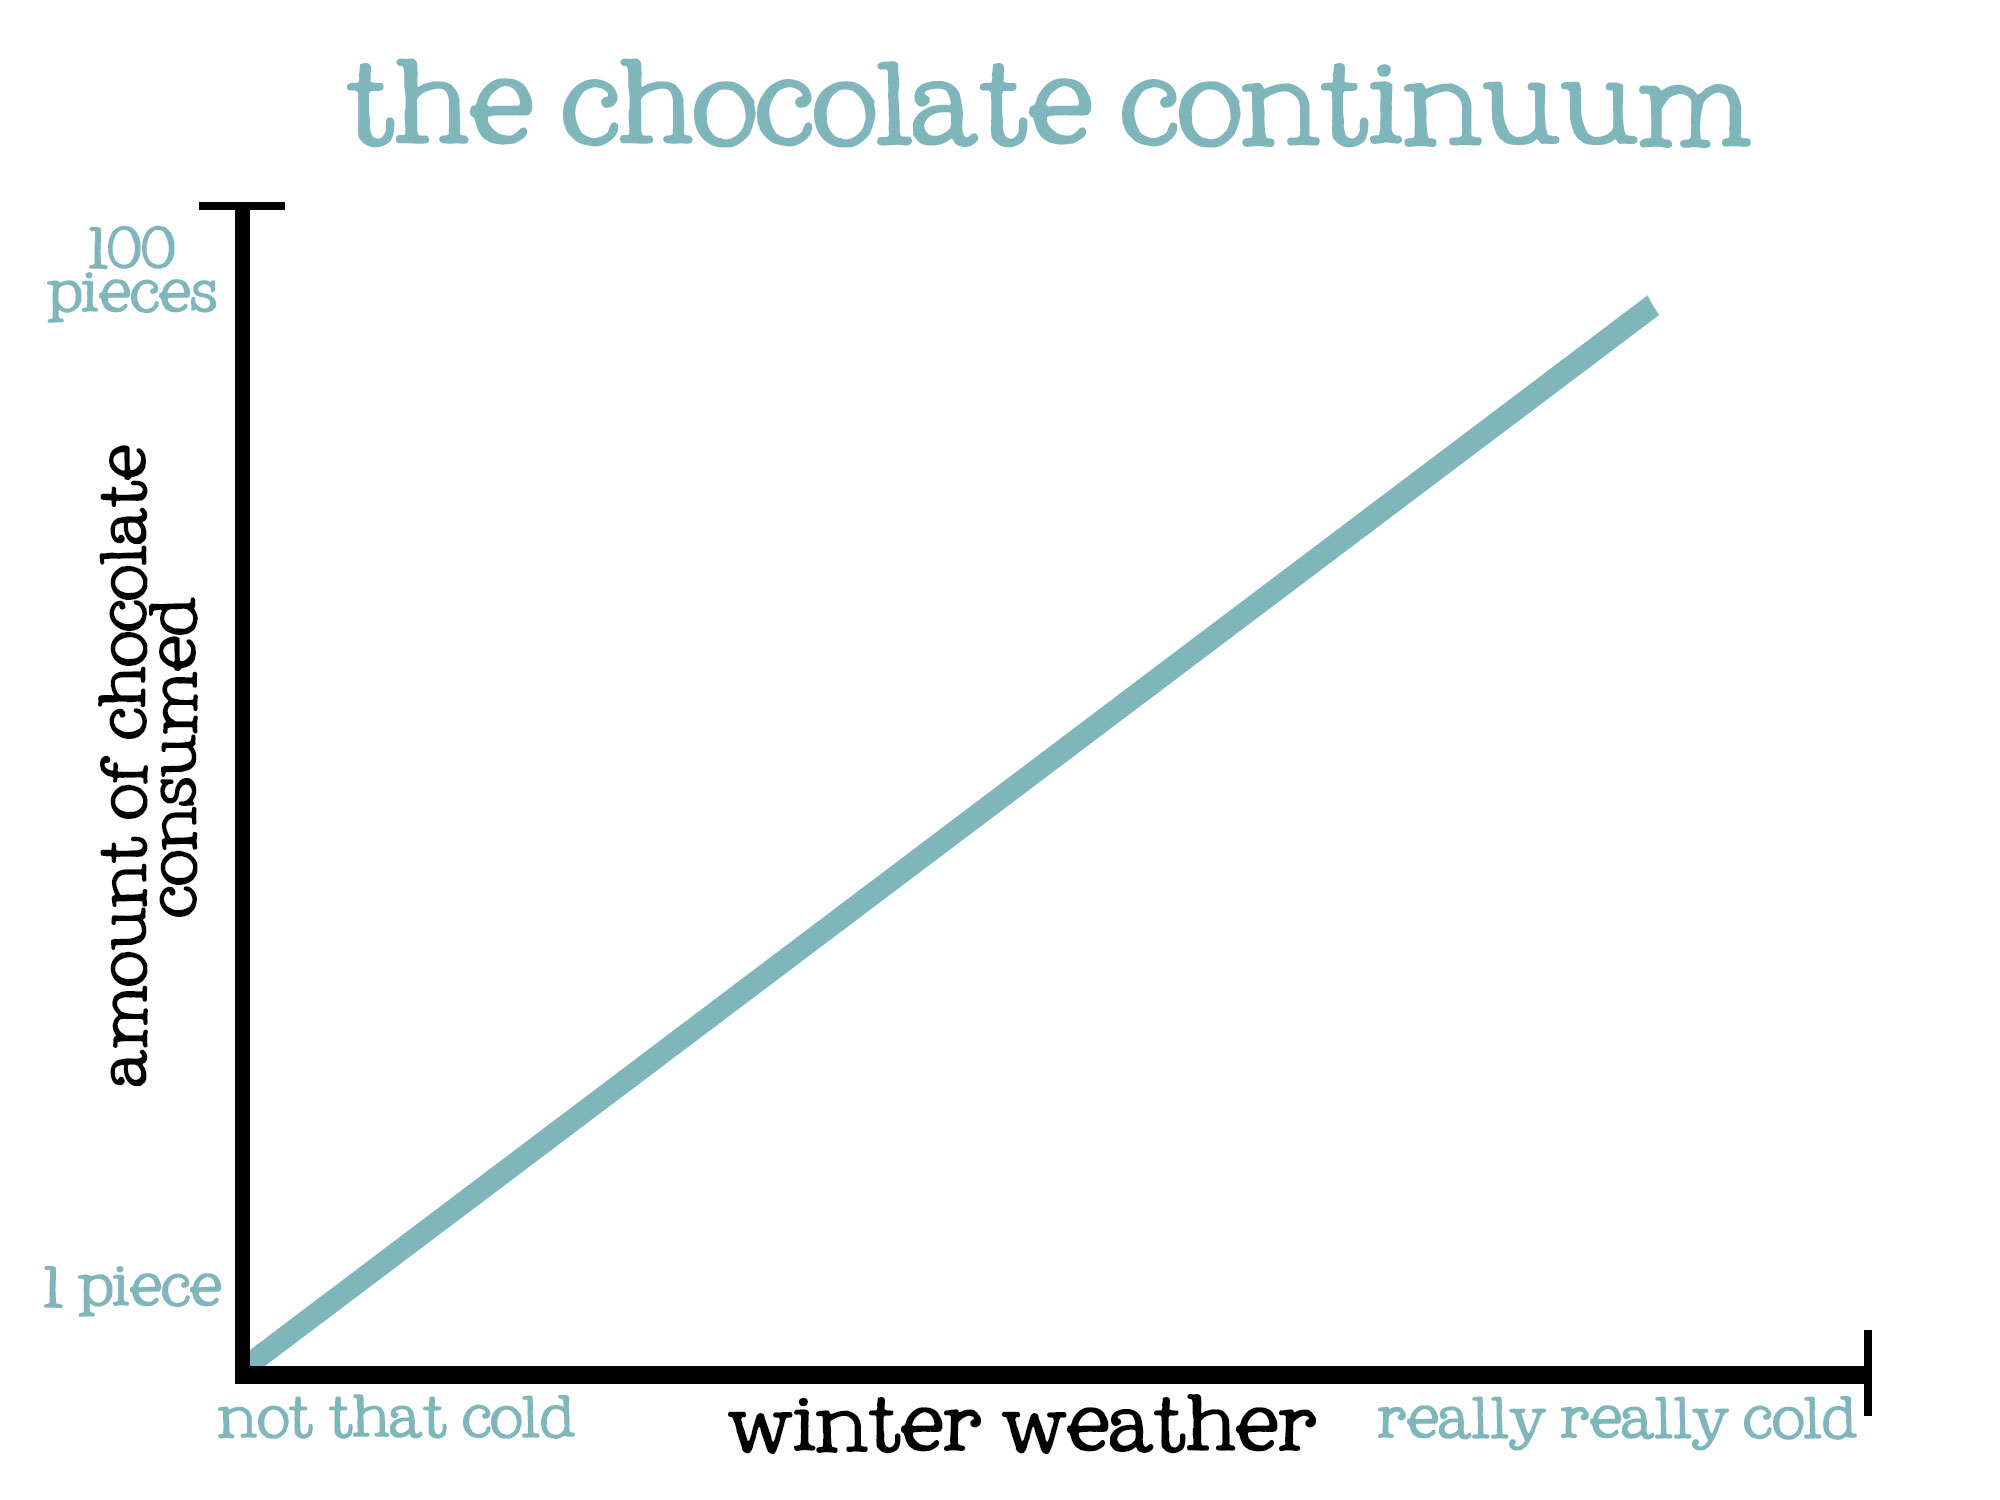 The Chocolate Continuum